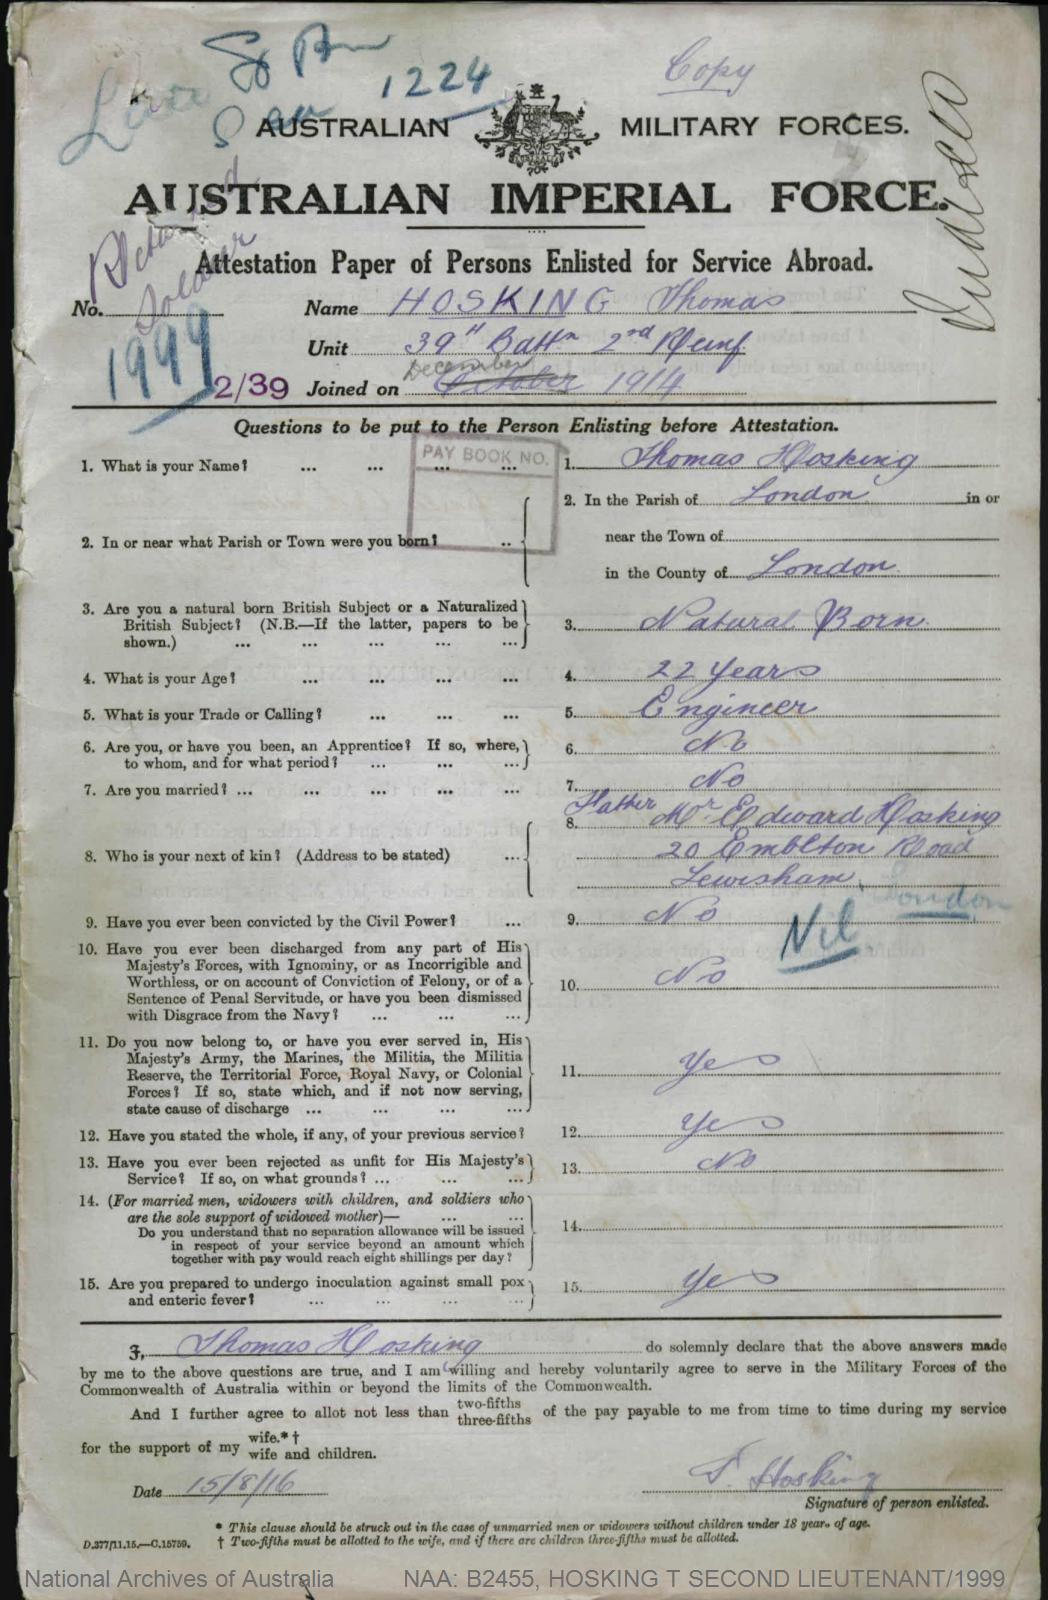 HOSKING Thomas : Service Number - Second Lieutenant/1999 : Place of Birth - London England : Place of Enlistment - Melbourne Vic : Next of Kin - (Father) HOSKING Edwin